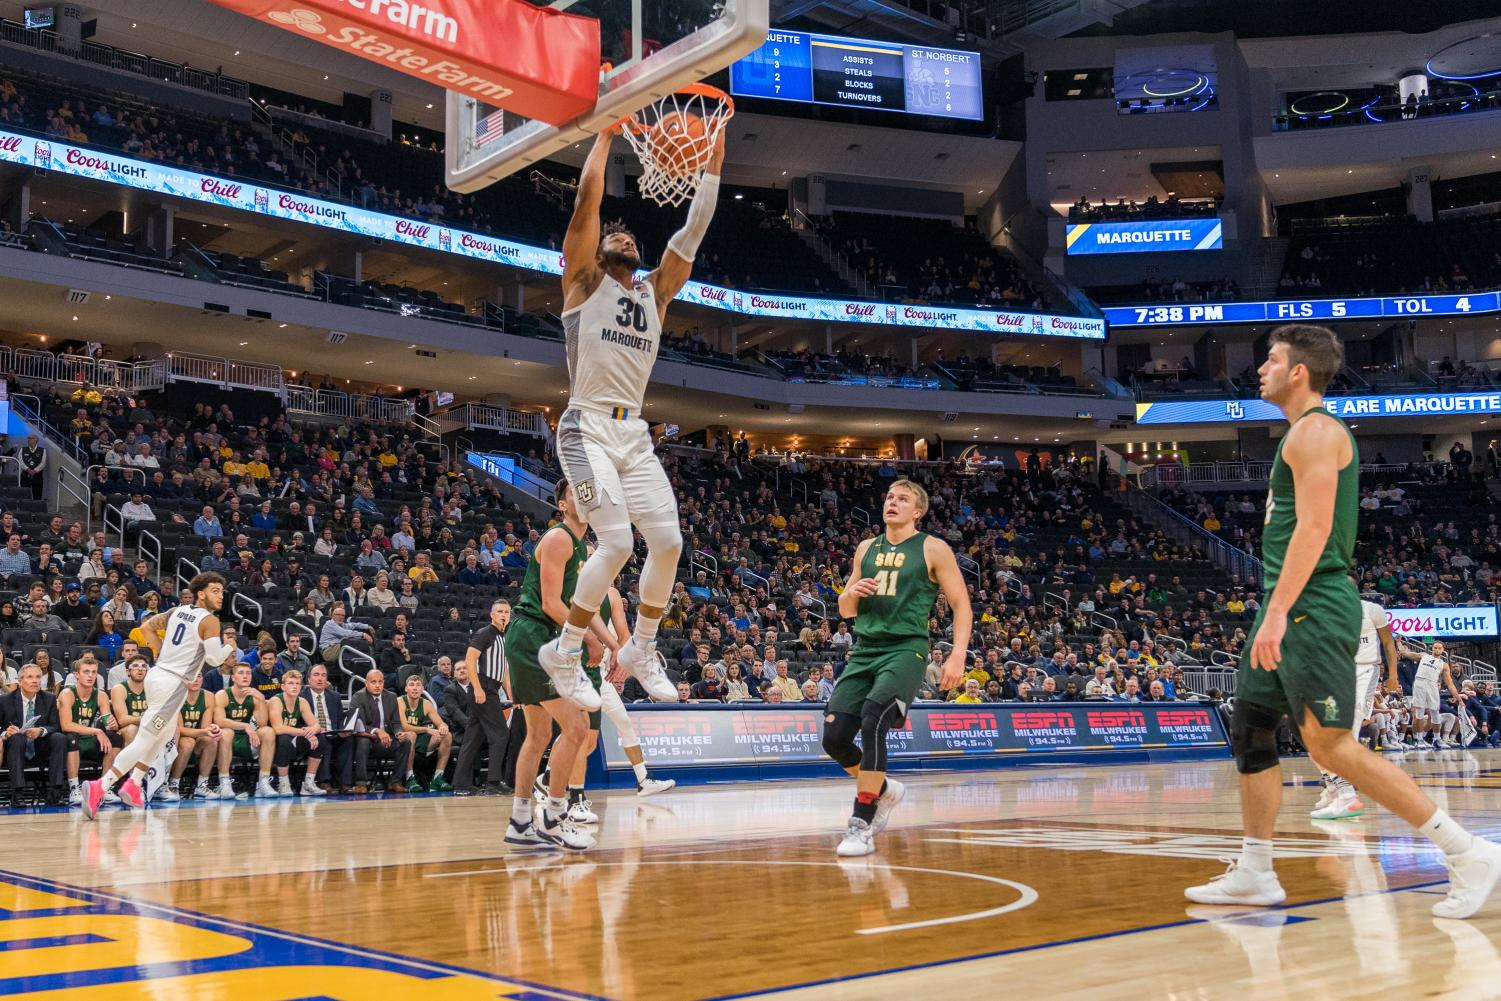 Ed Morrow (30) slam dunks in Marquette's 88-51 win over St. Norbert College.